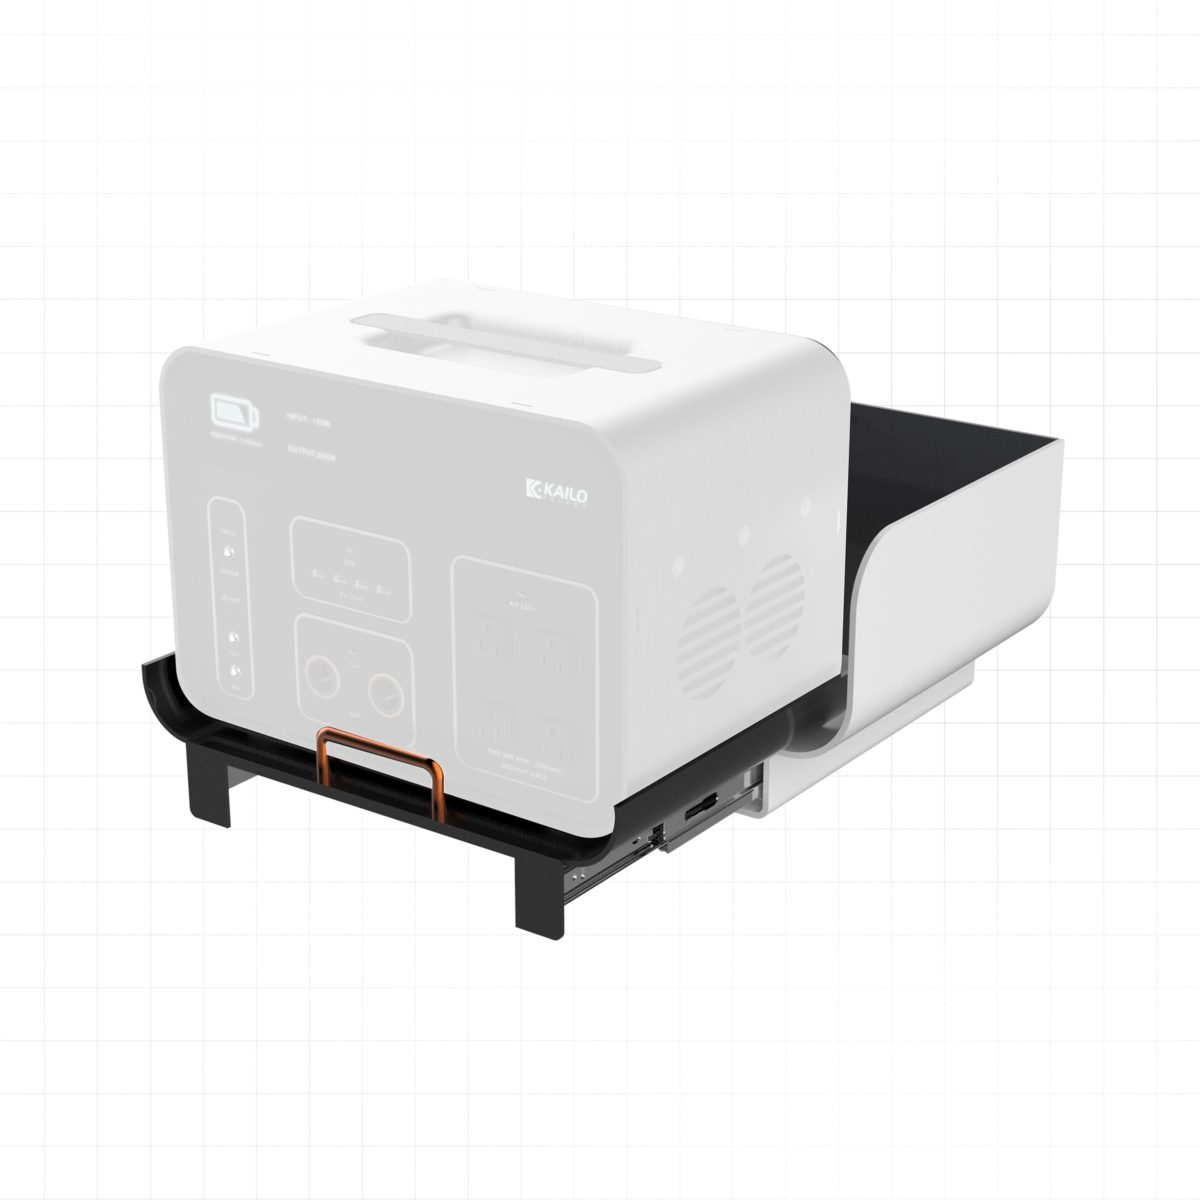 Toaster clipart plug in. The powerbox kailo energy